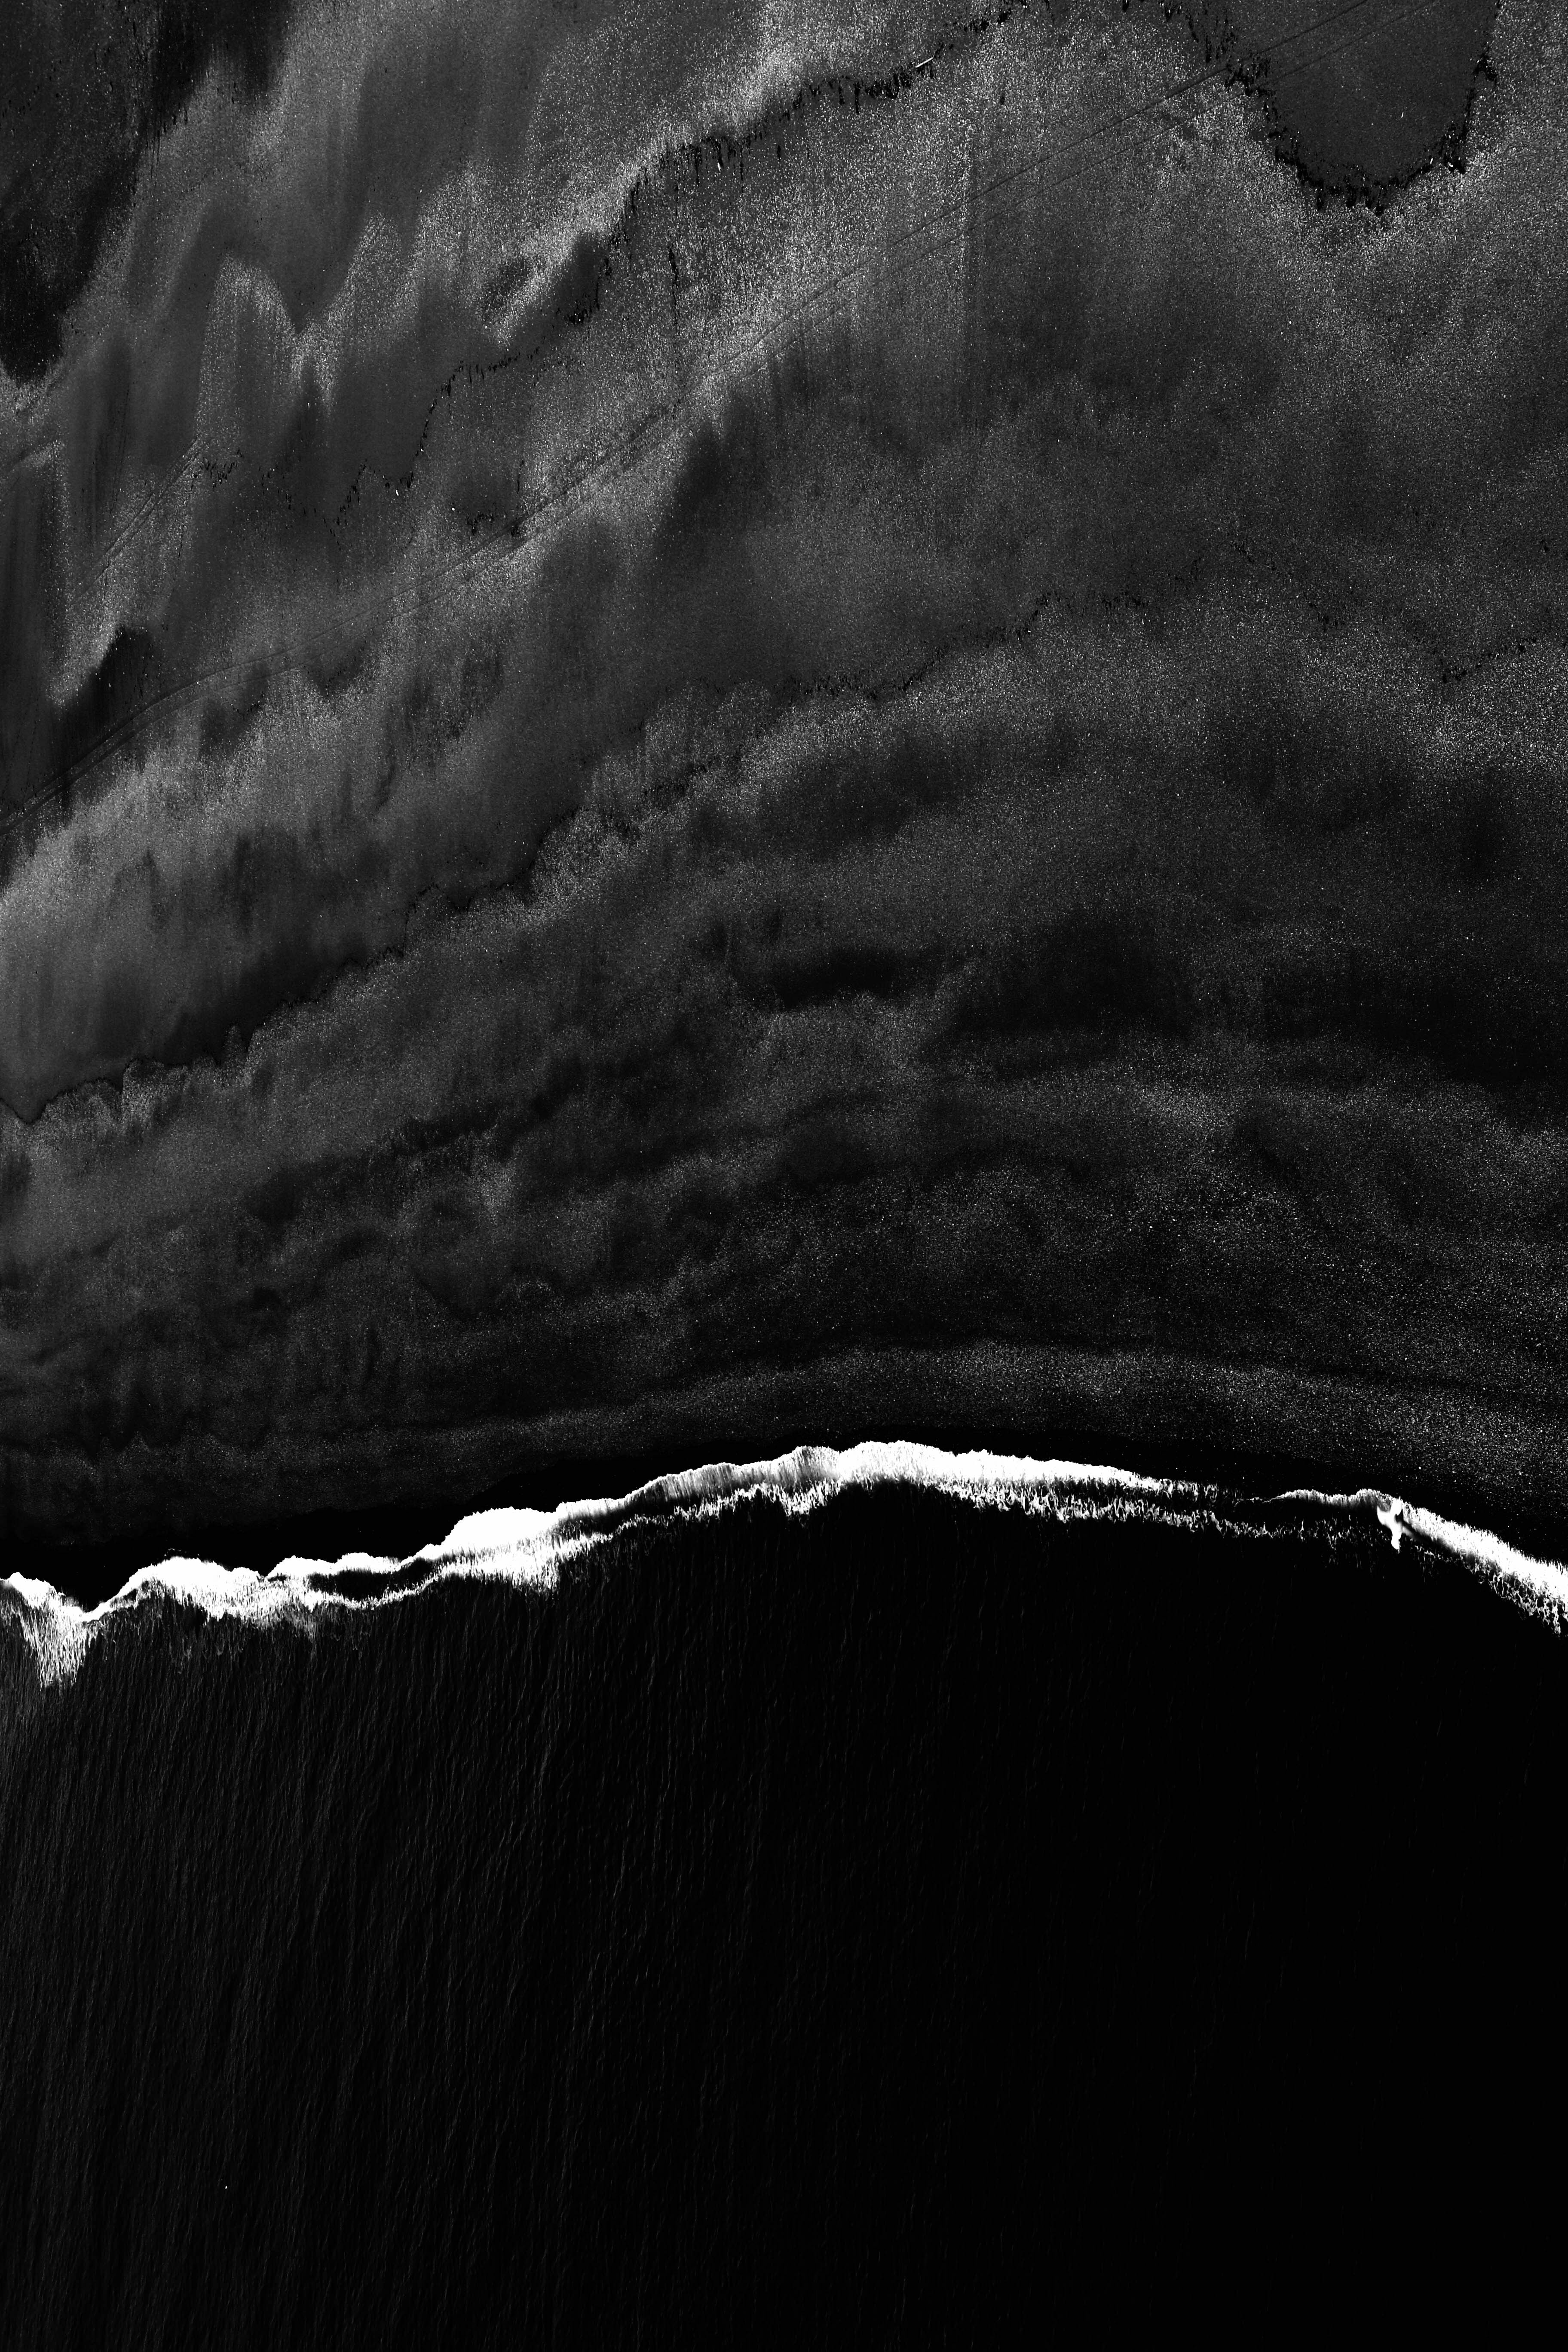 92599 download wallpaper Lines, Bw, Chb, Wavy, Relief, Dark screensavers and pictures for free